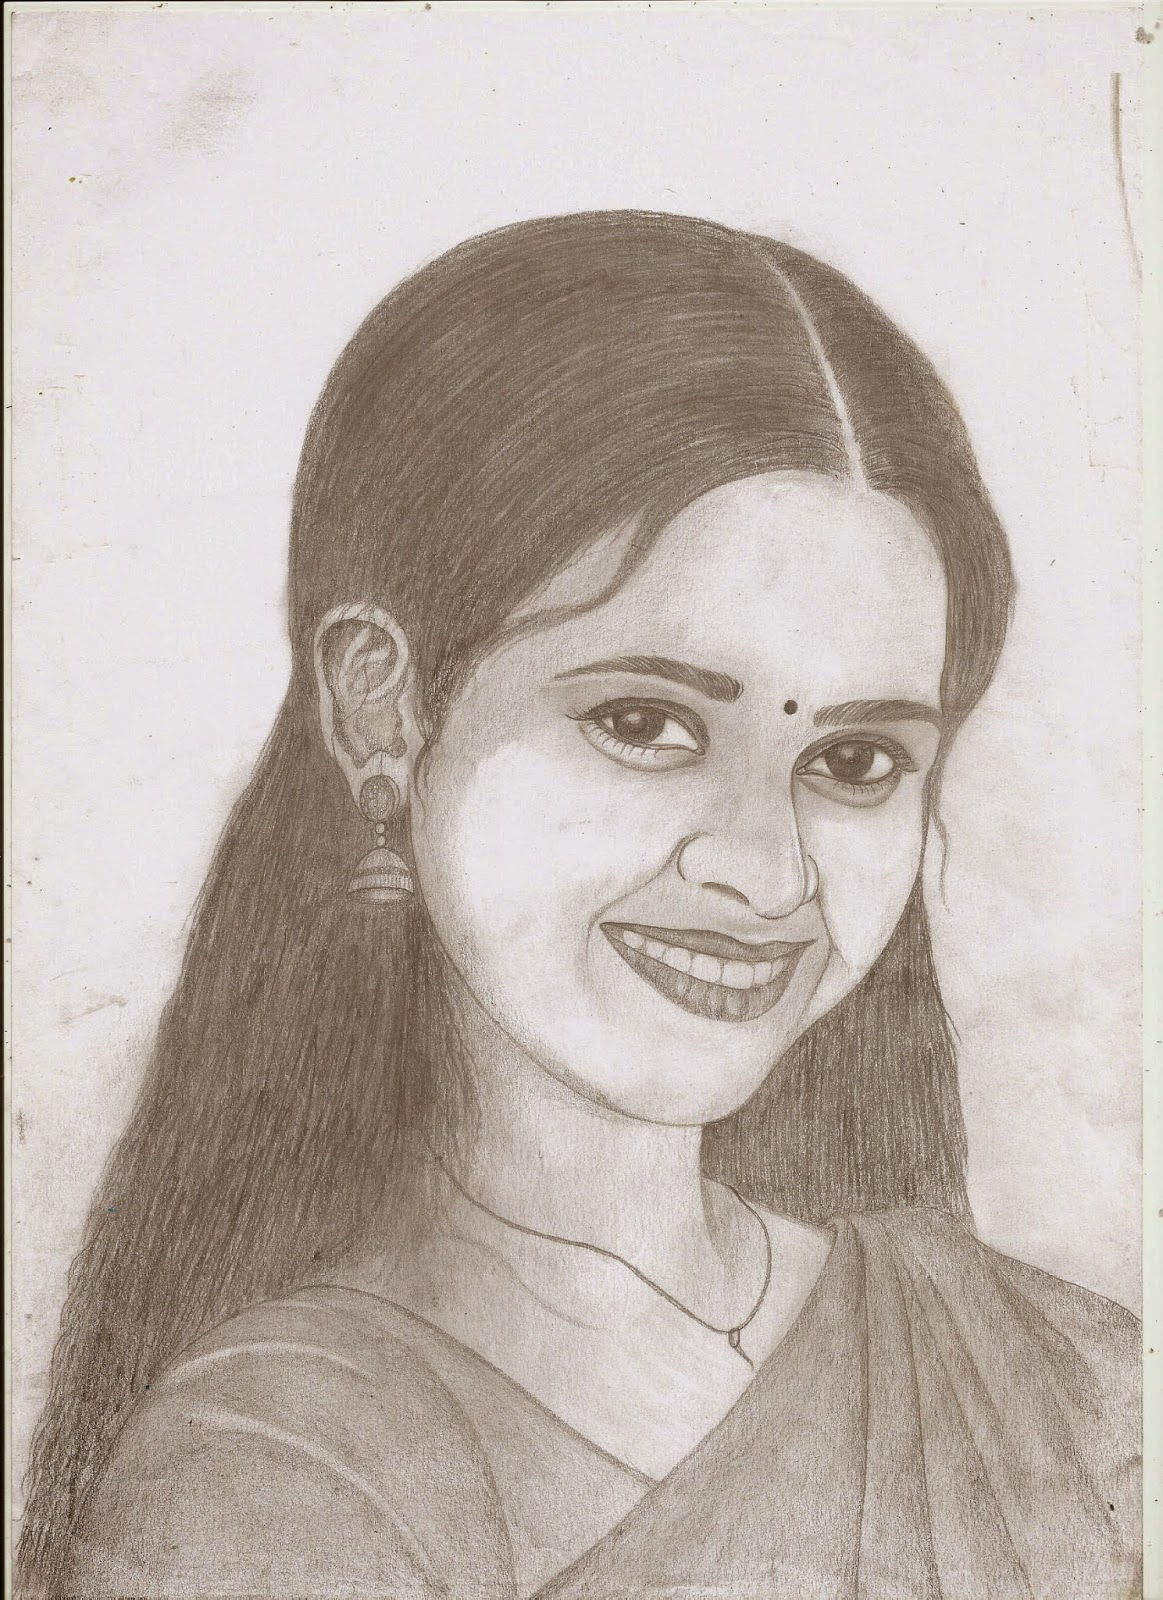 Sri divya pencil sketch actress sri divya